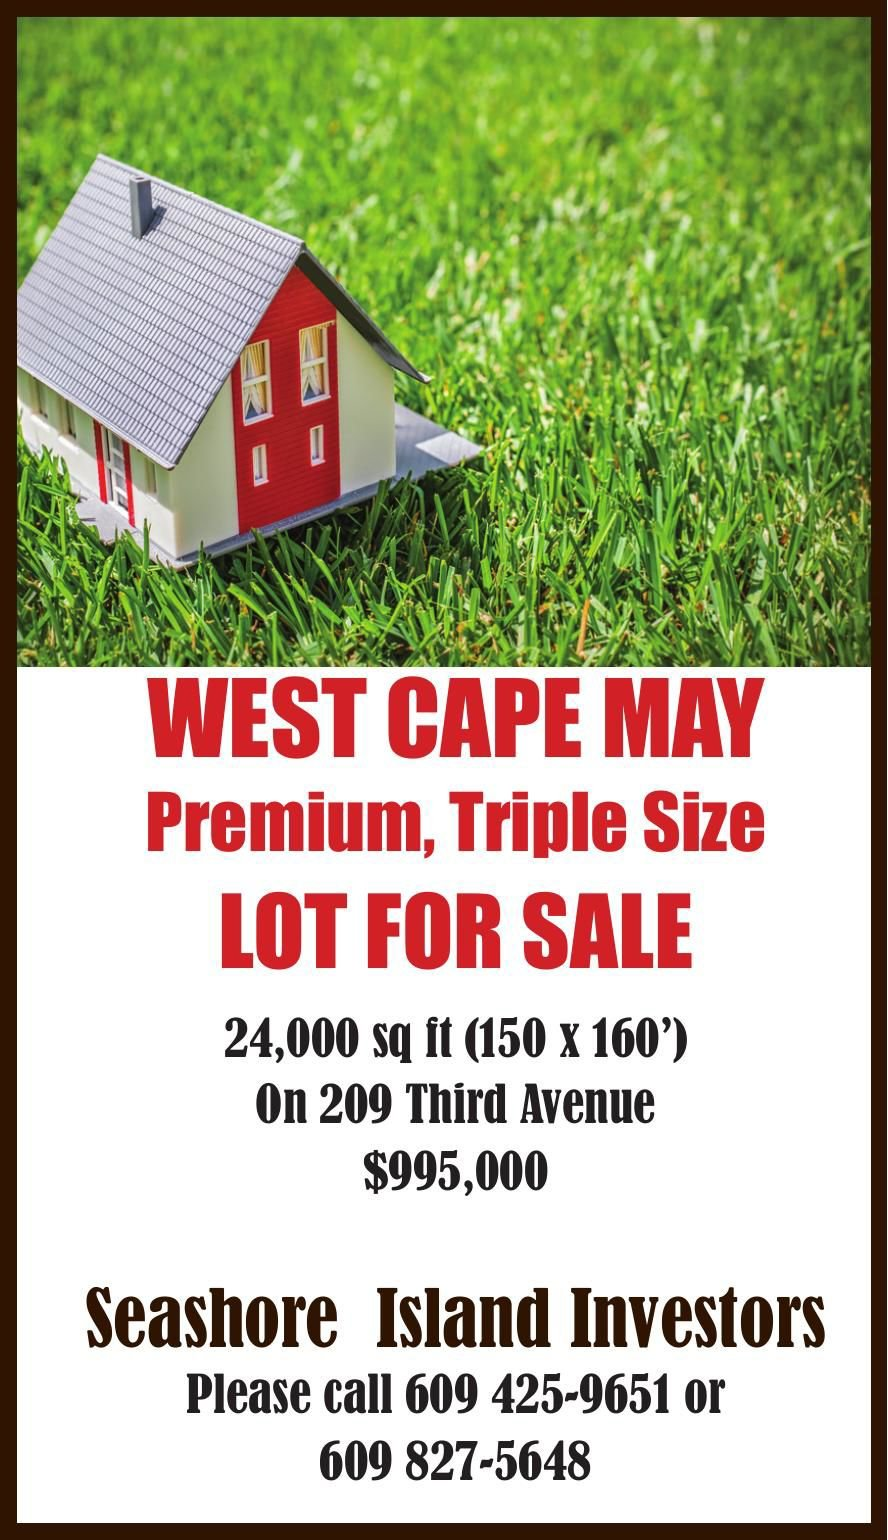 WEST CAPE MAY Lot For Sale